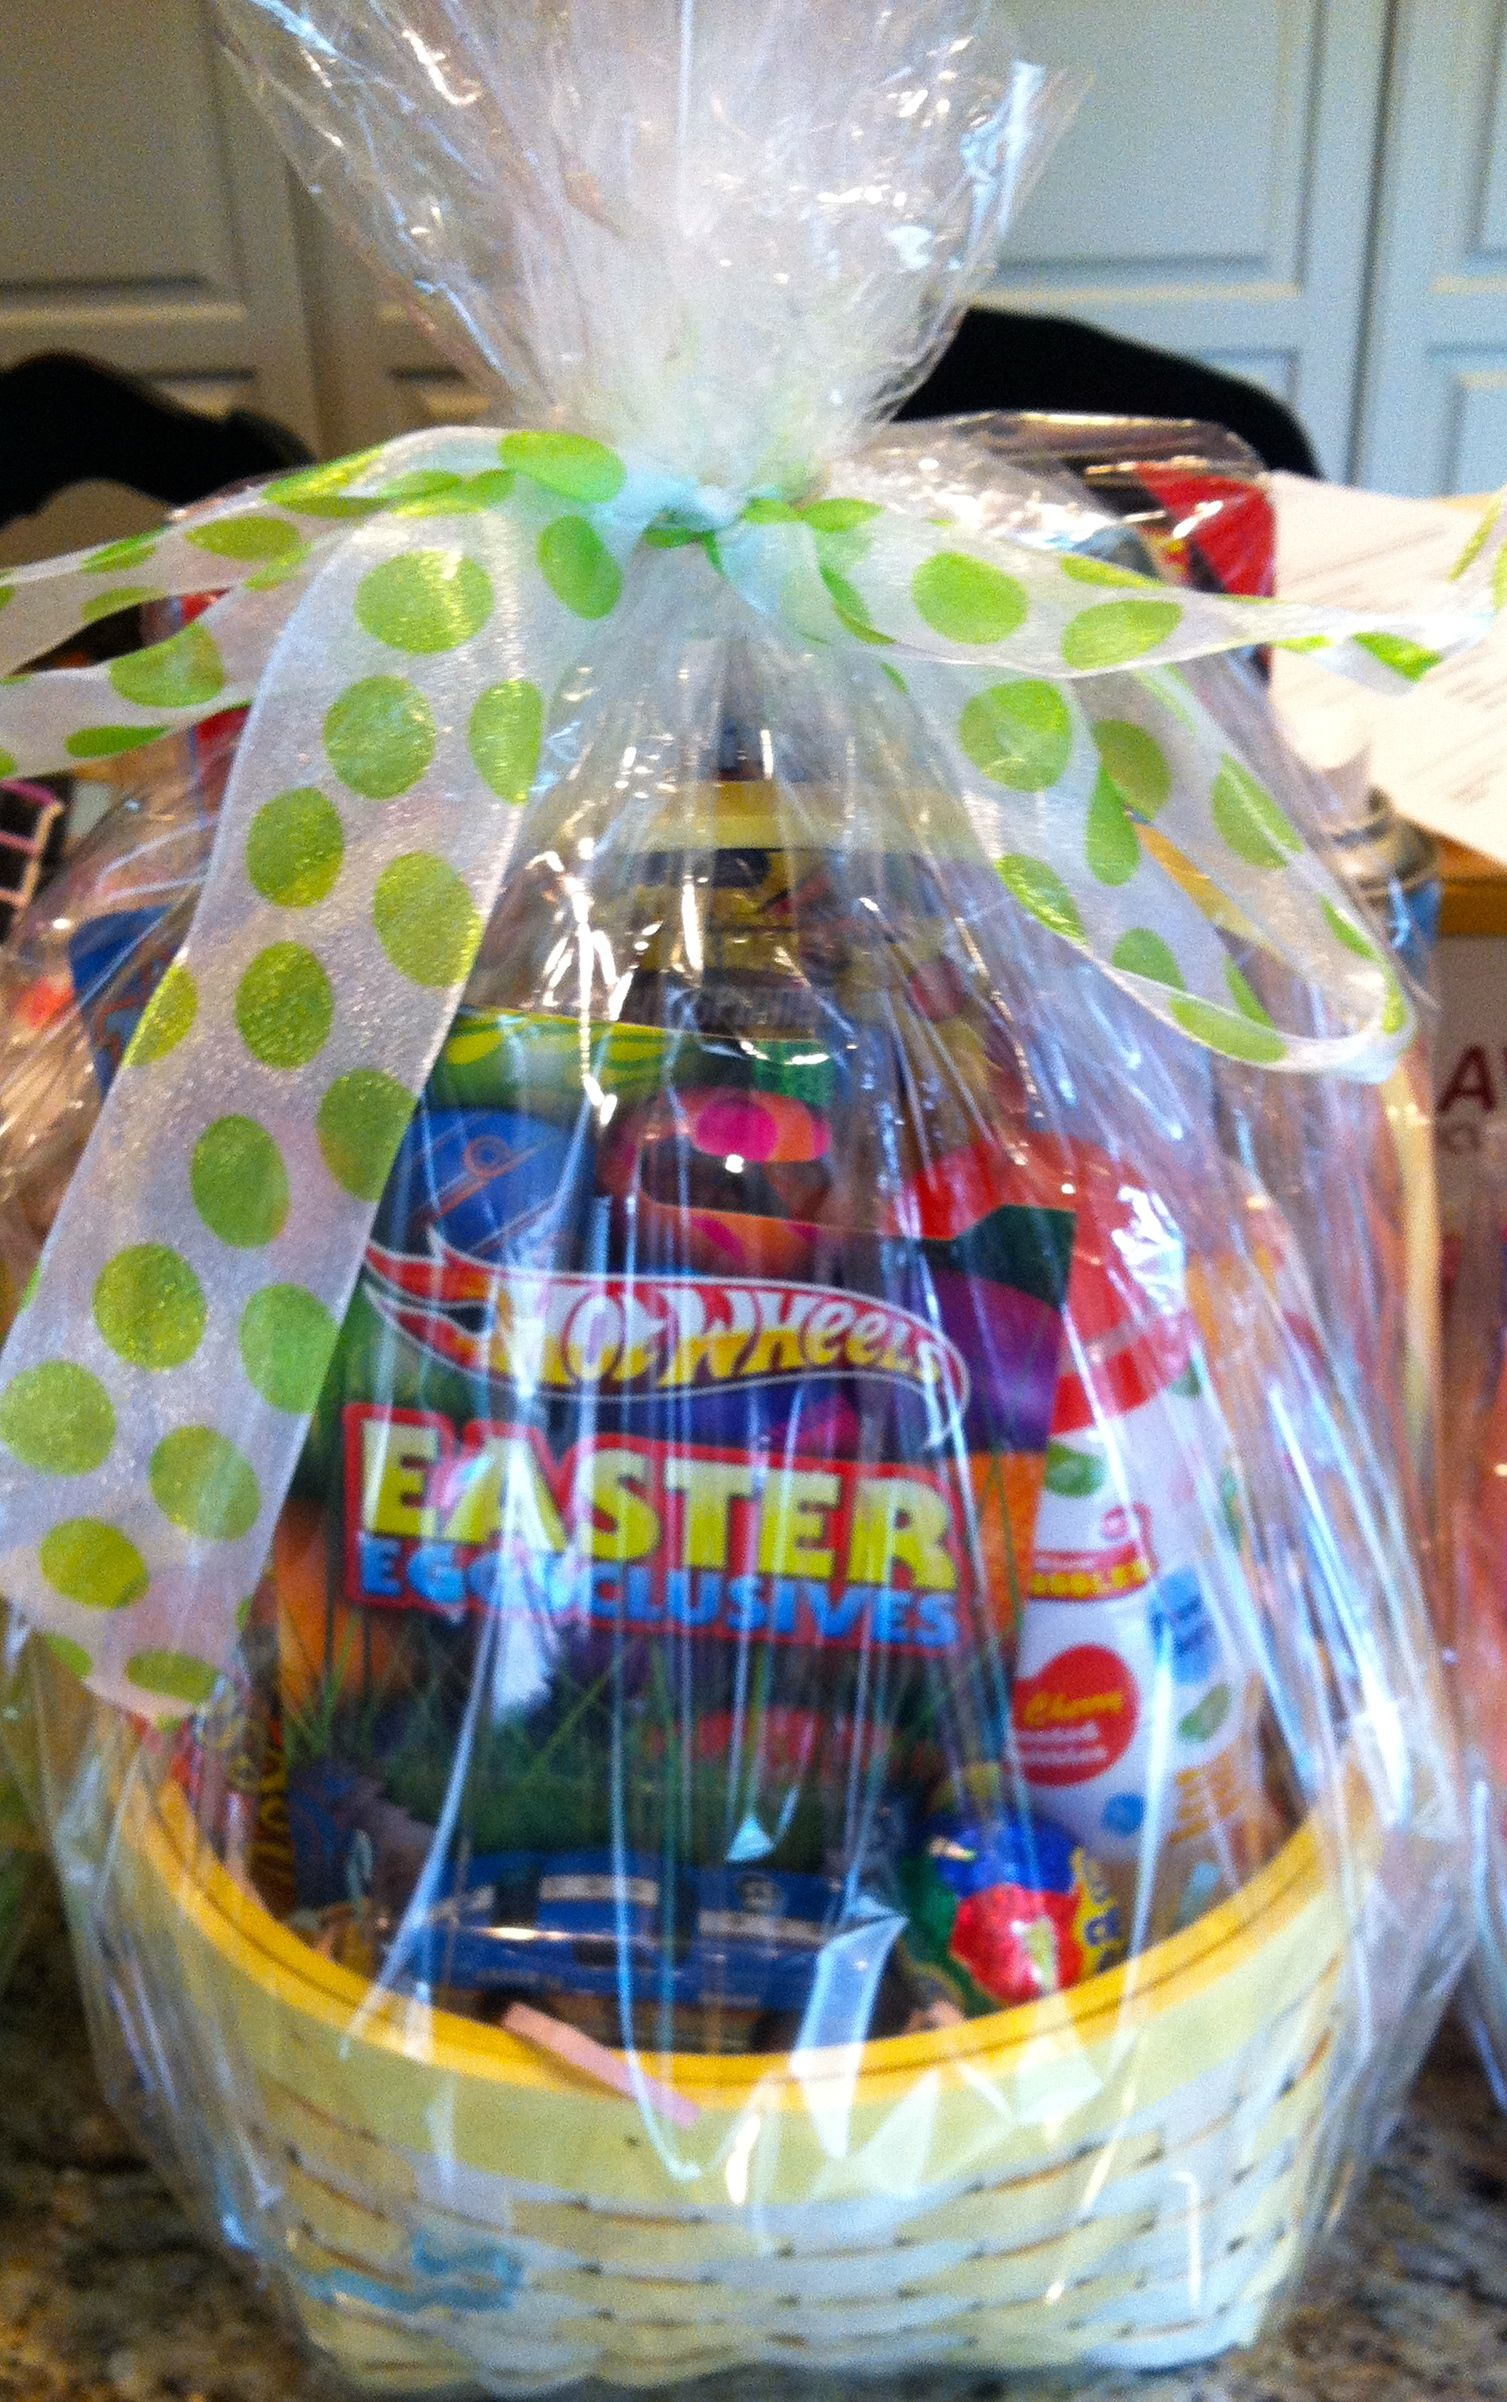 Easter basket 3 6 year old boy happy holidaysbirthdays easter basket 3 6 year old boy negle Gallery